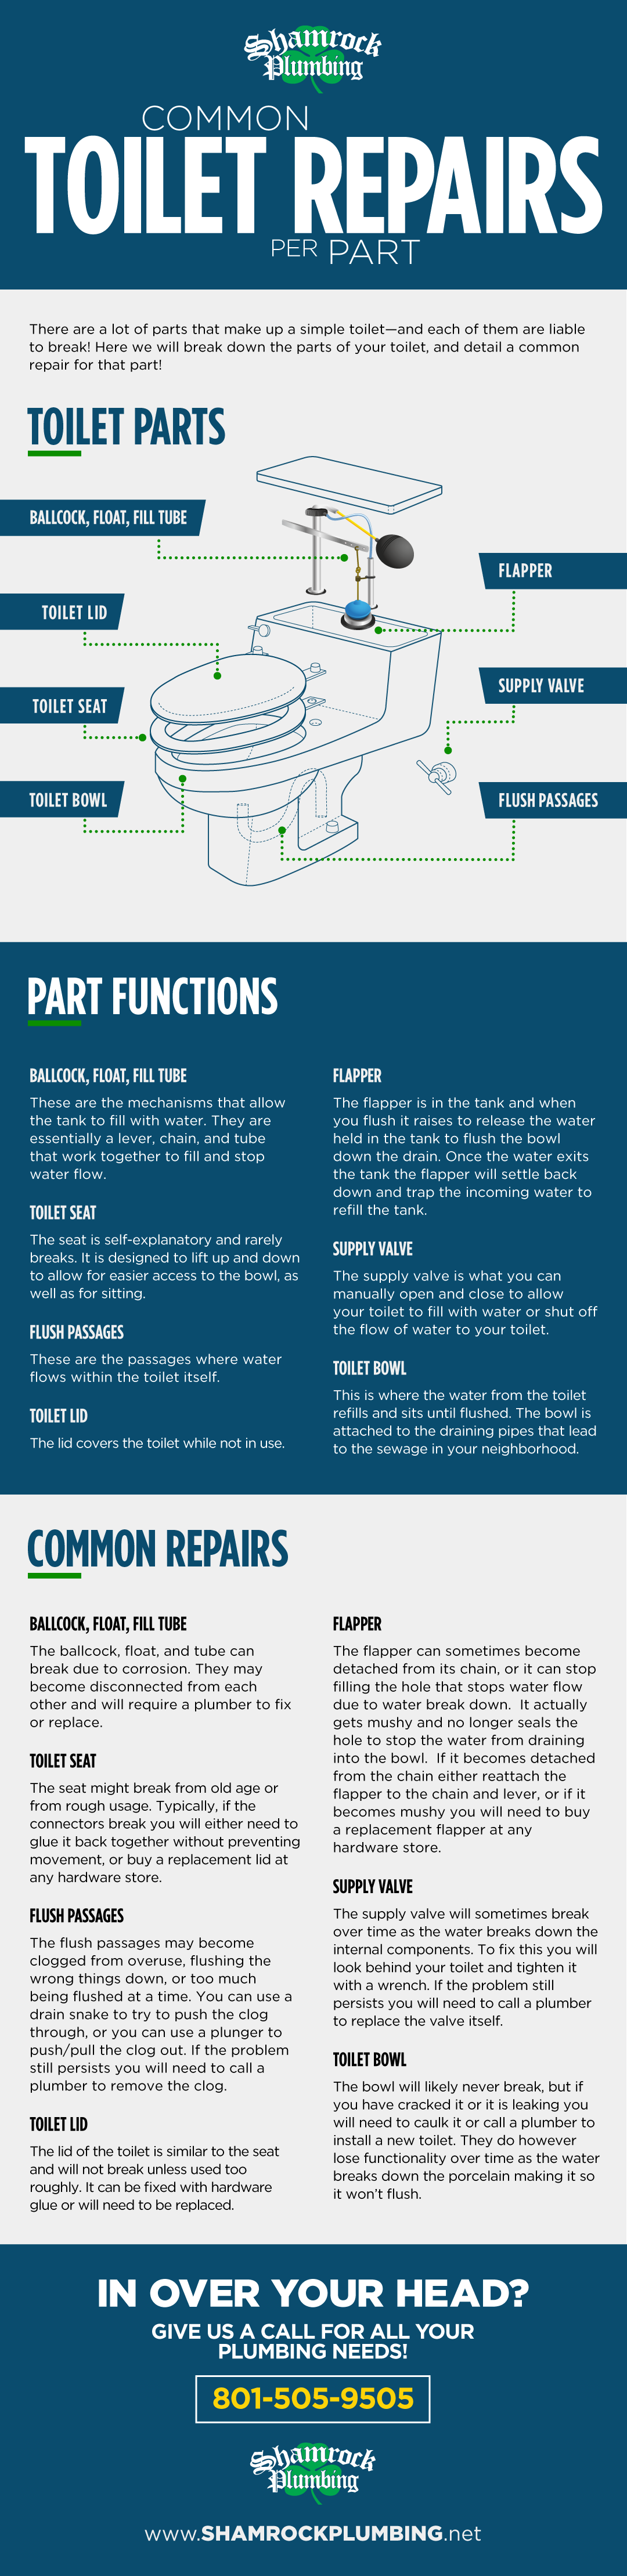 An infographic about toilet parts, part functions, and common repairs provided by Utah business Shamrock Plumbing